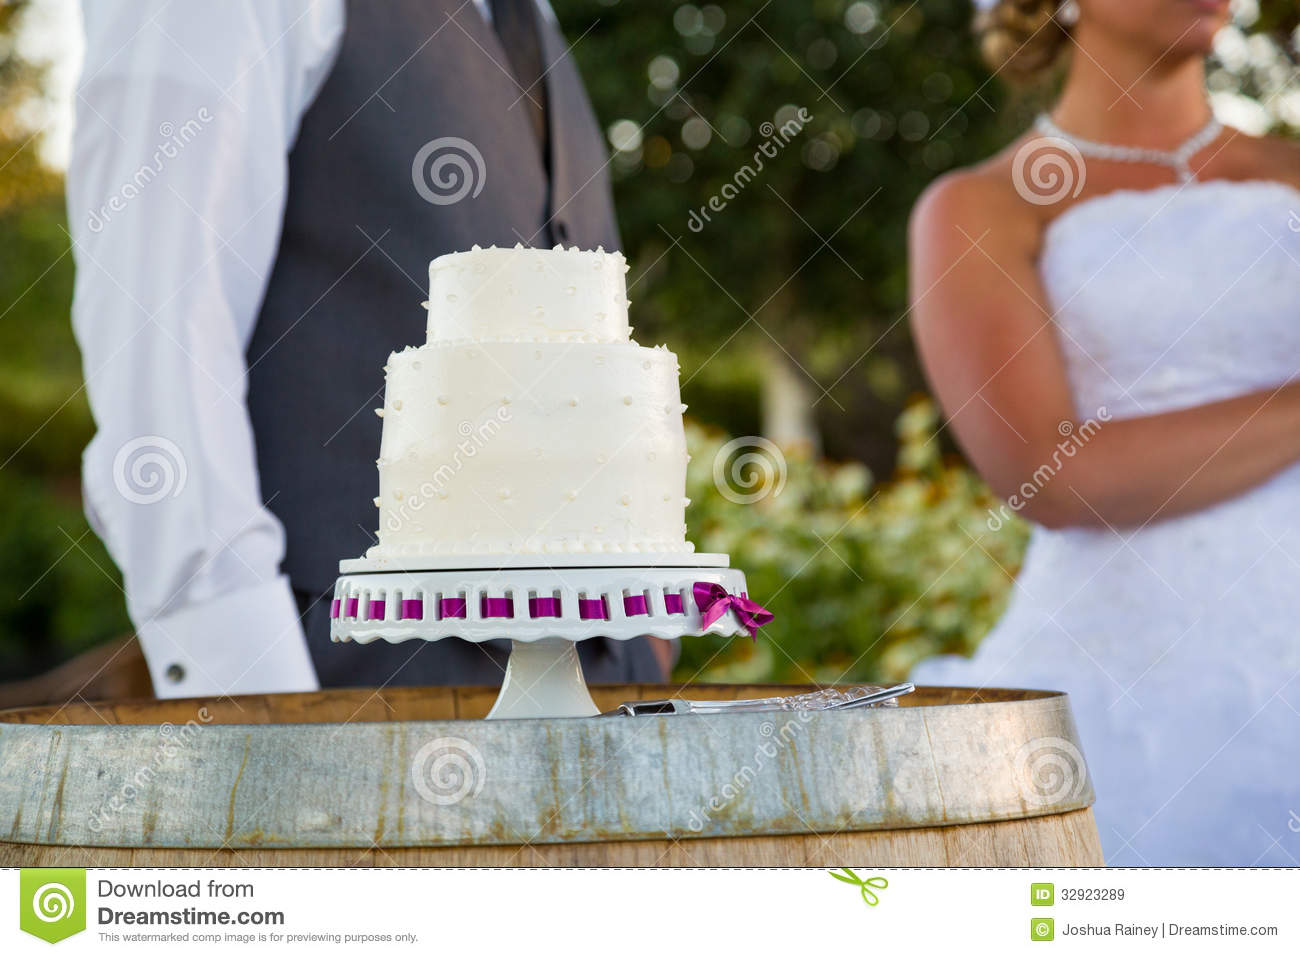 tradition behind cutting the wedding cake and groom cake cutting royalty free stock images 21219